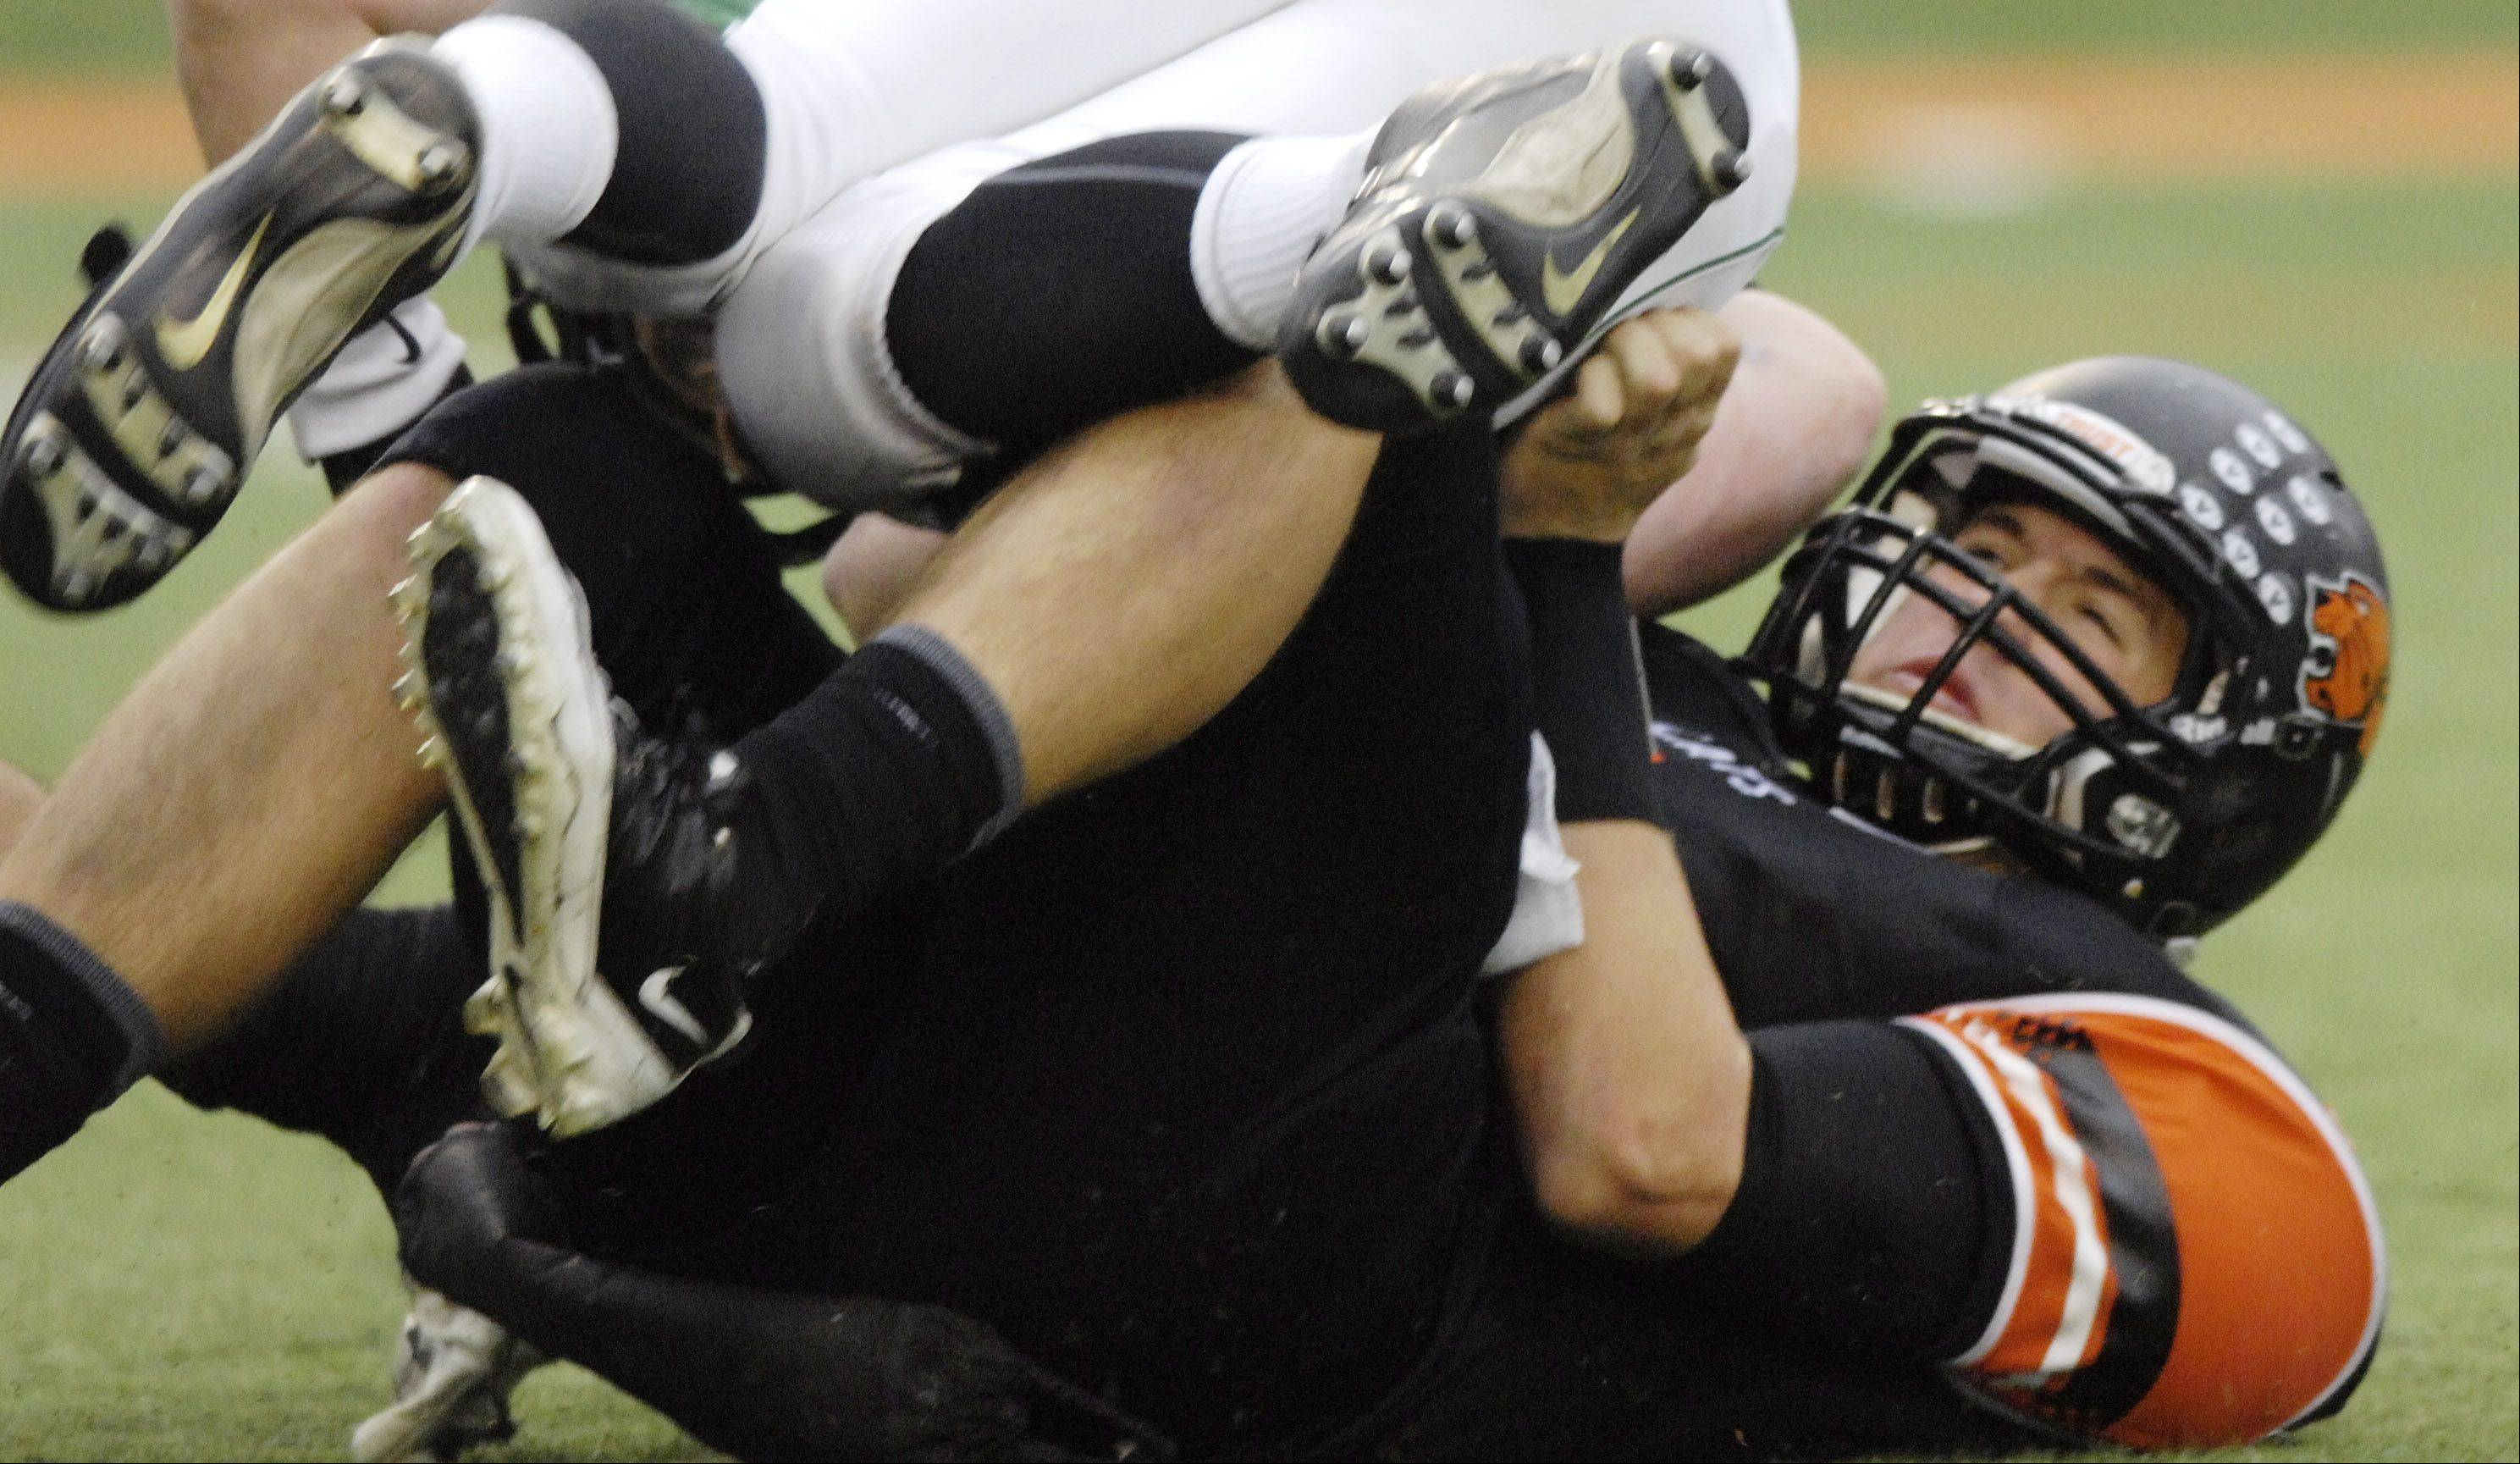 Libertyville quarterback Jack Deichl gets sacked during Saturday's game against Glenbard West.